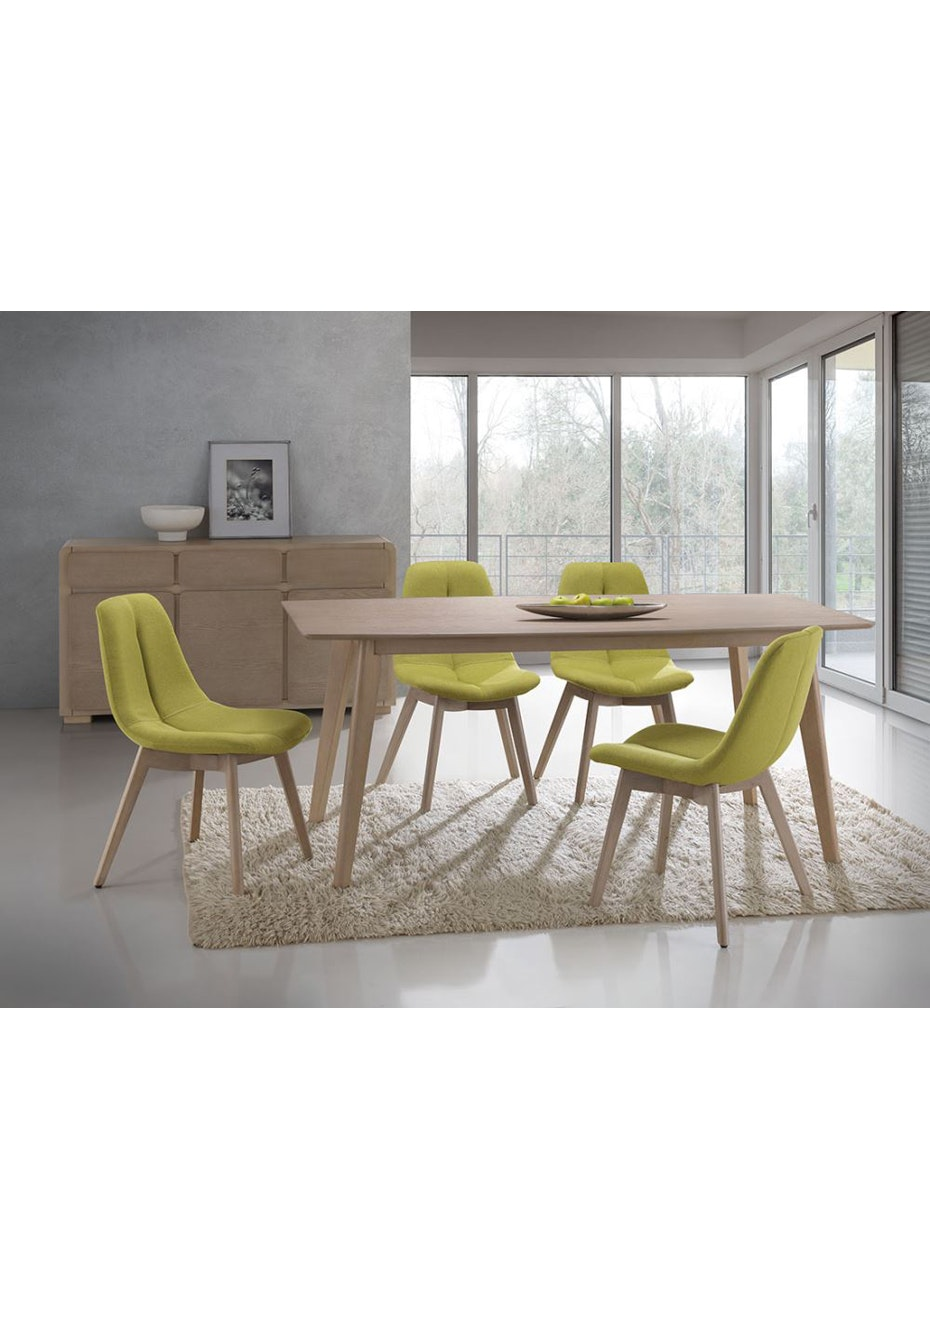 Marnie Dining Chair - Set of 2